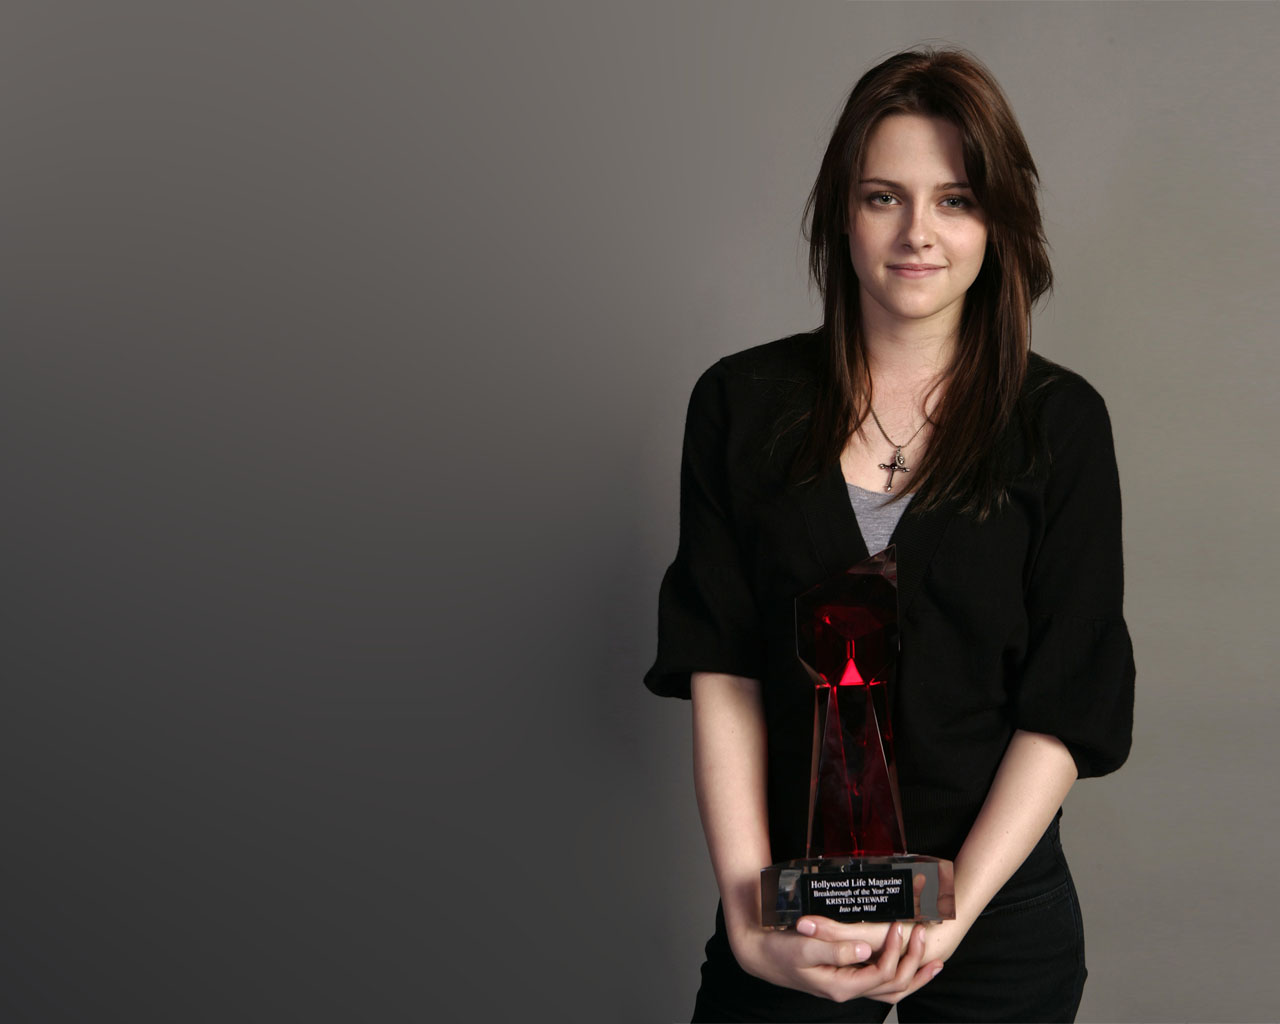 hollywod actress kristen stewart hot hd wallpaper , she is one of